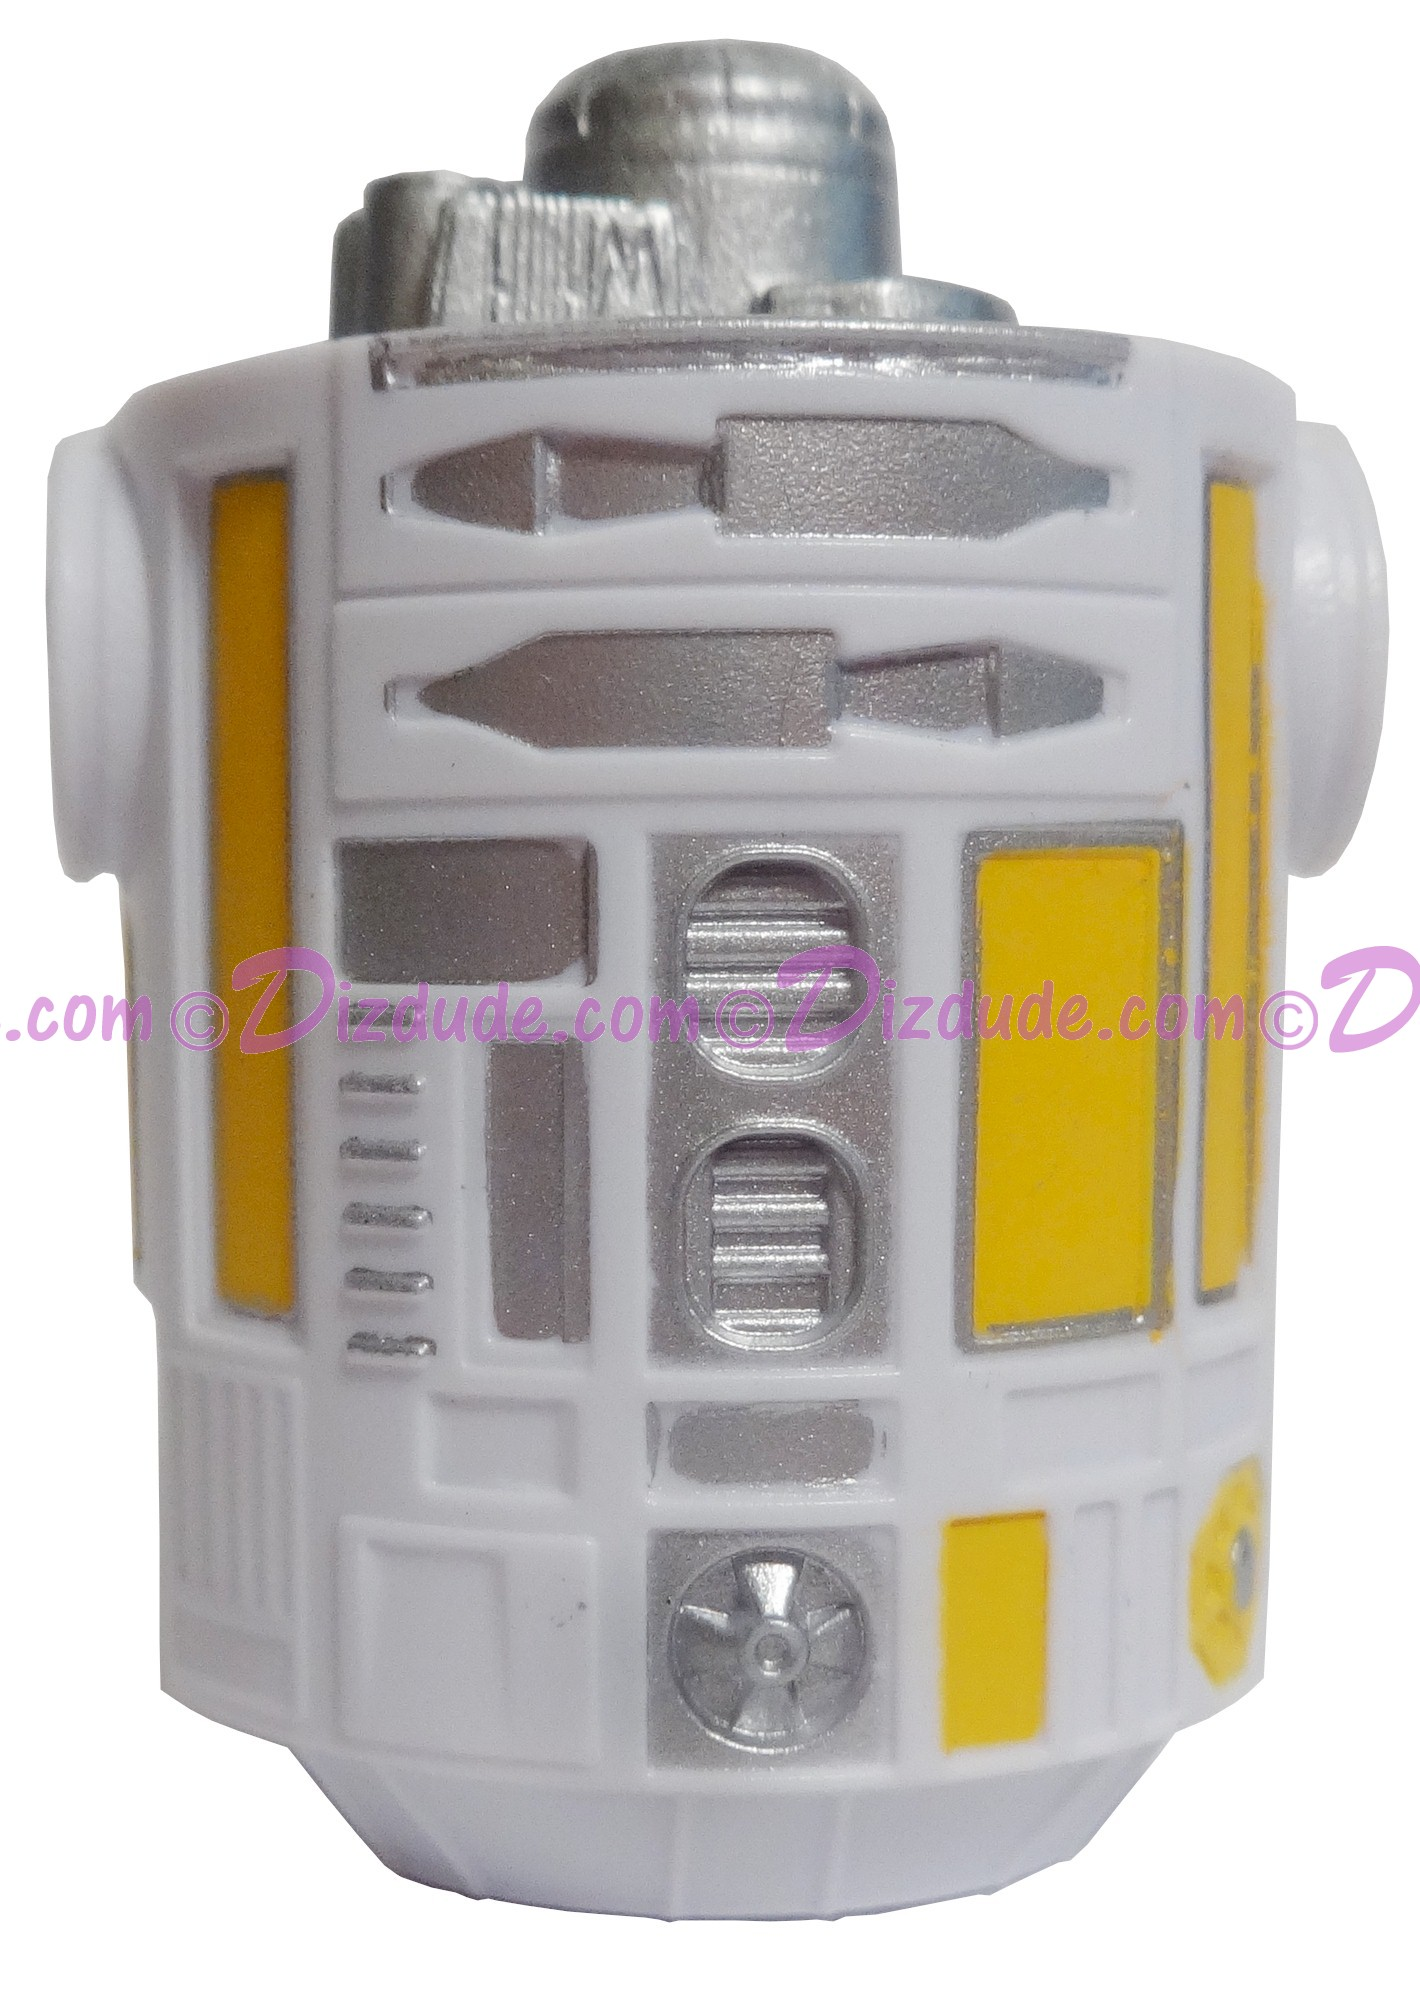 White & Yellow Astromech Droid Body ~ Series 2 from Disney Star Wars Build-A-Droid Factory © Dizdude.com